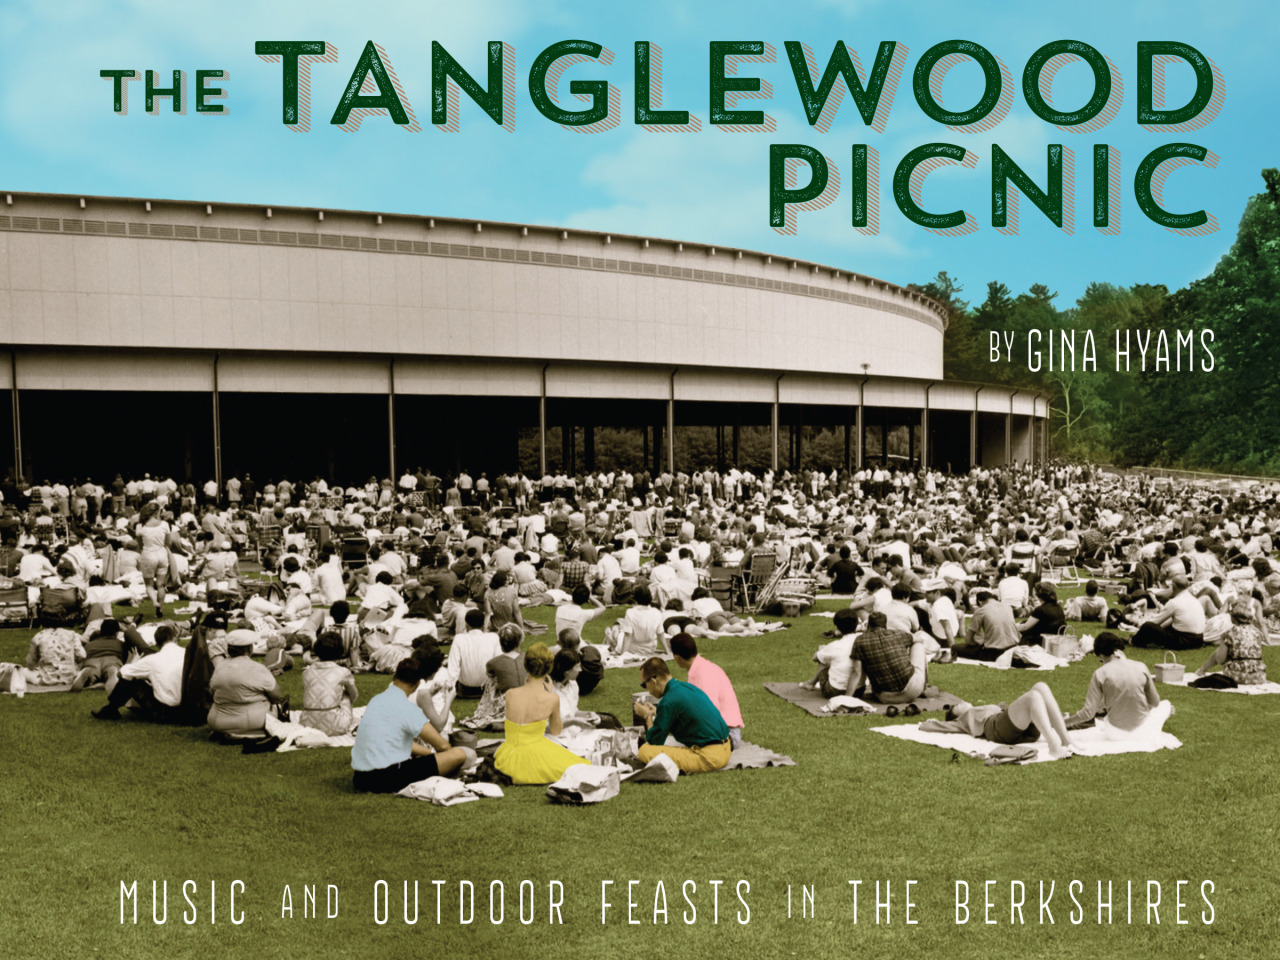 The Tanglewood Picnic cover